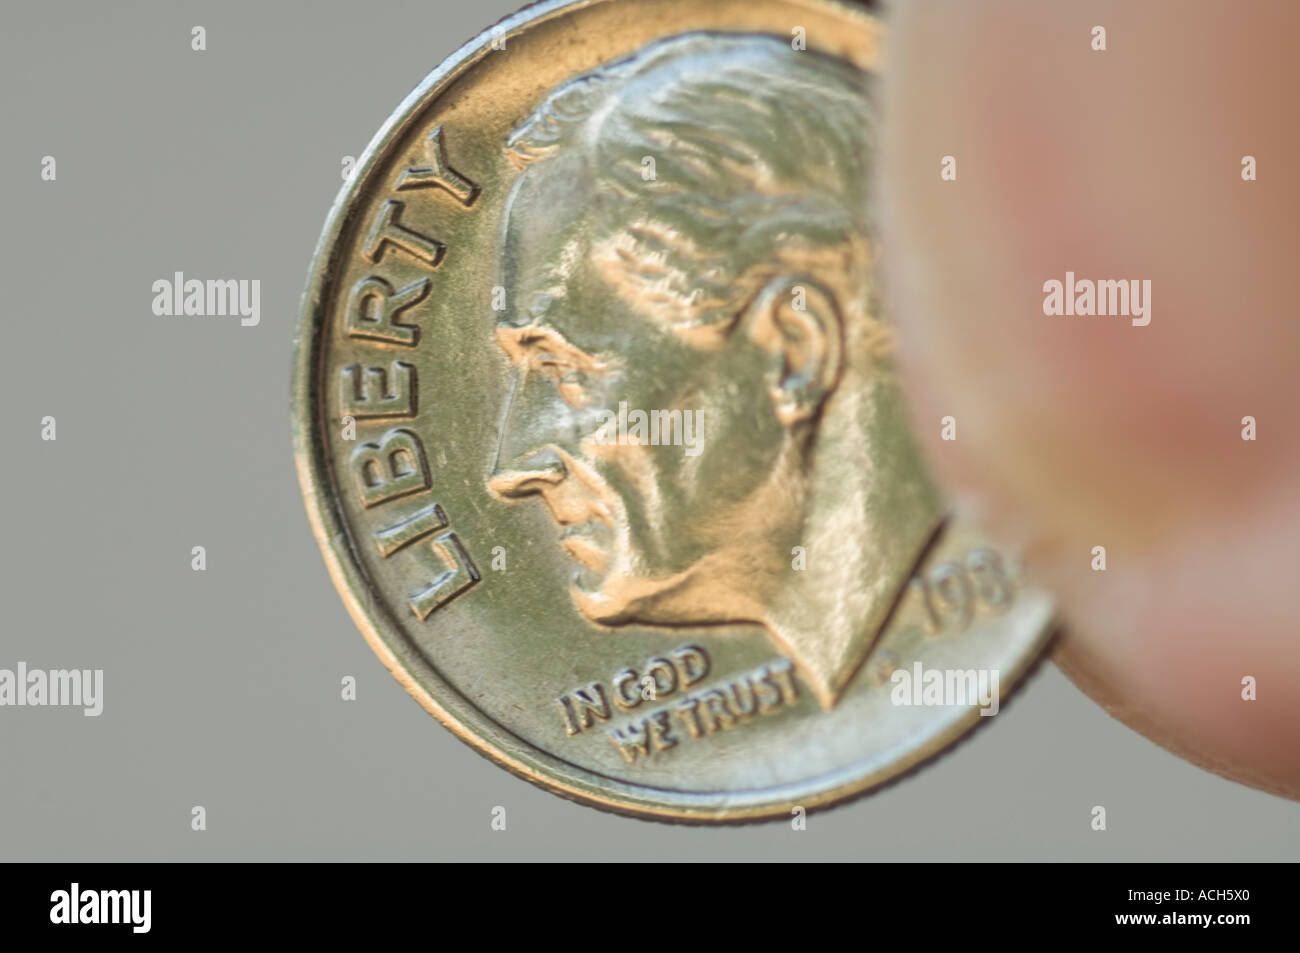 extreme closeup of United States dime coin - Stock Image